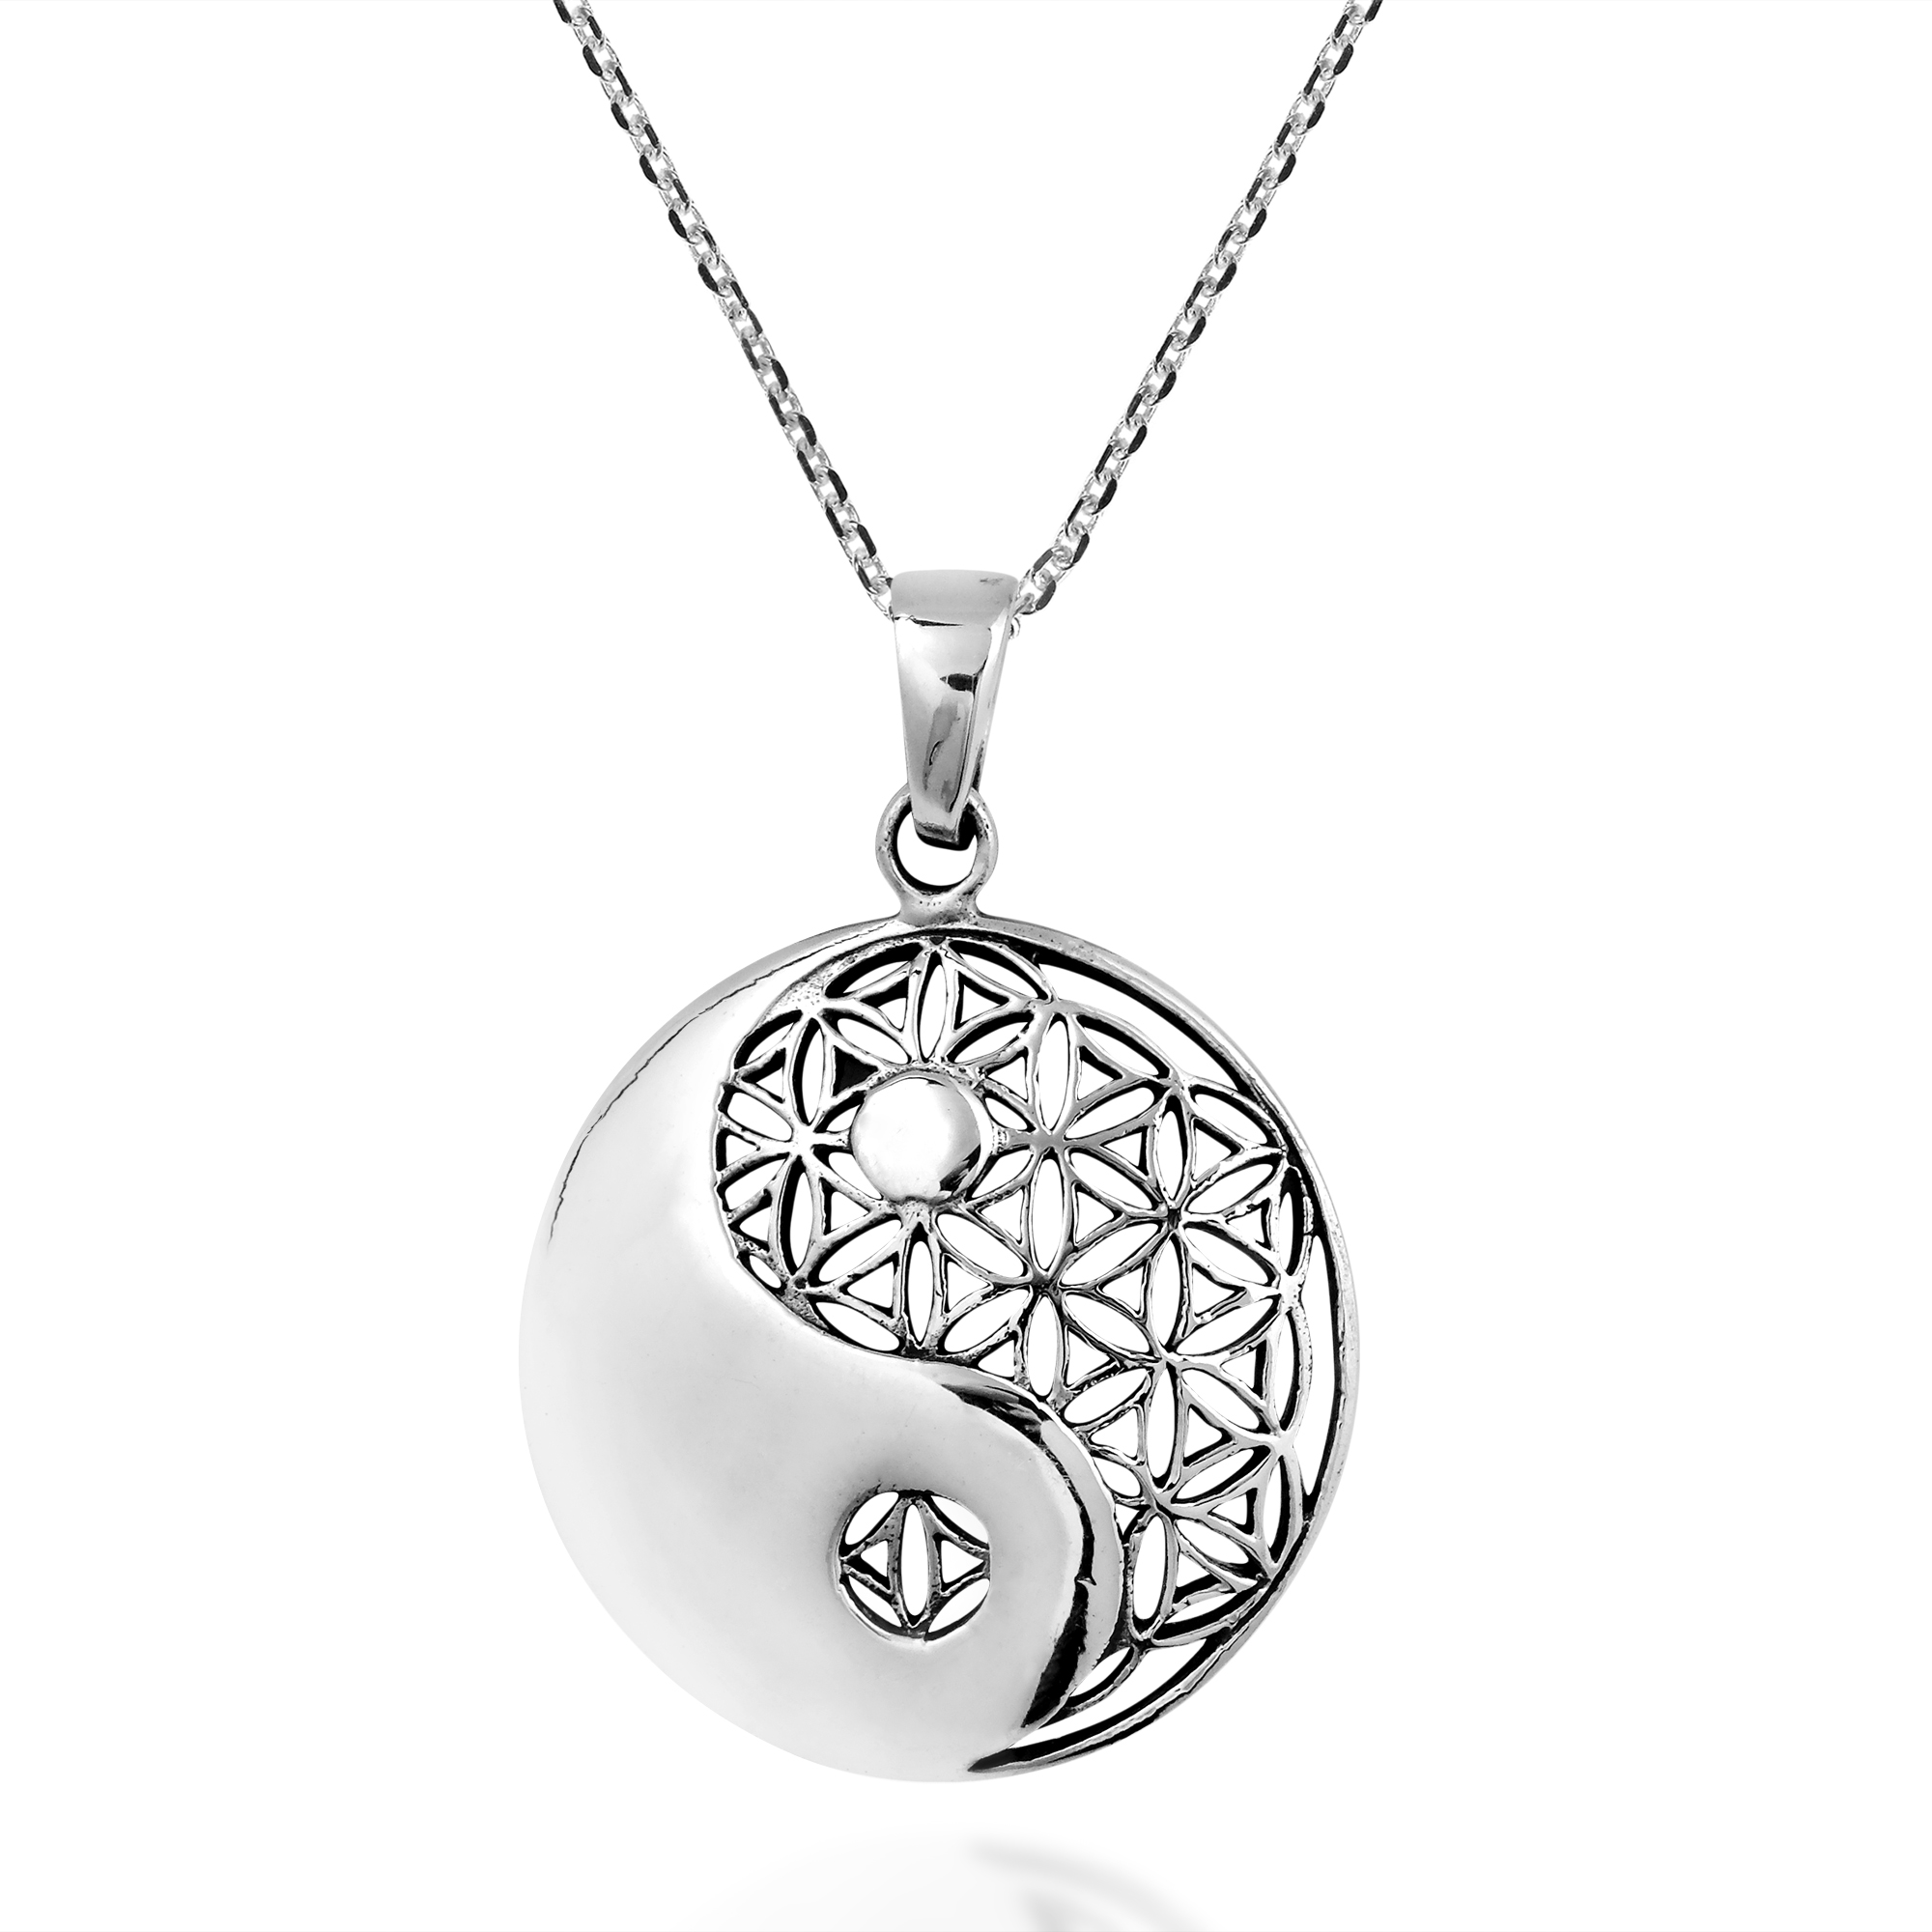 details aeravida necklaces message pendant product silver pn products inspirational necklace believe plain sterling